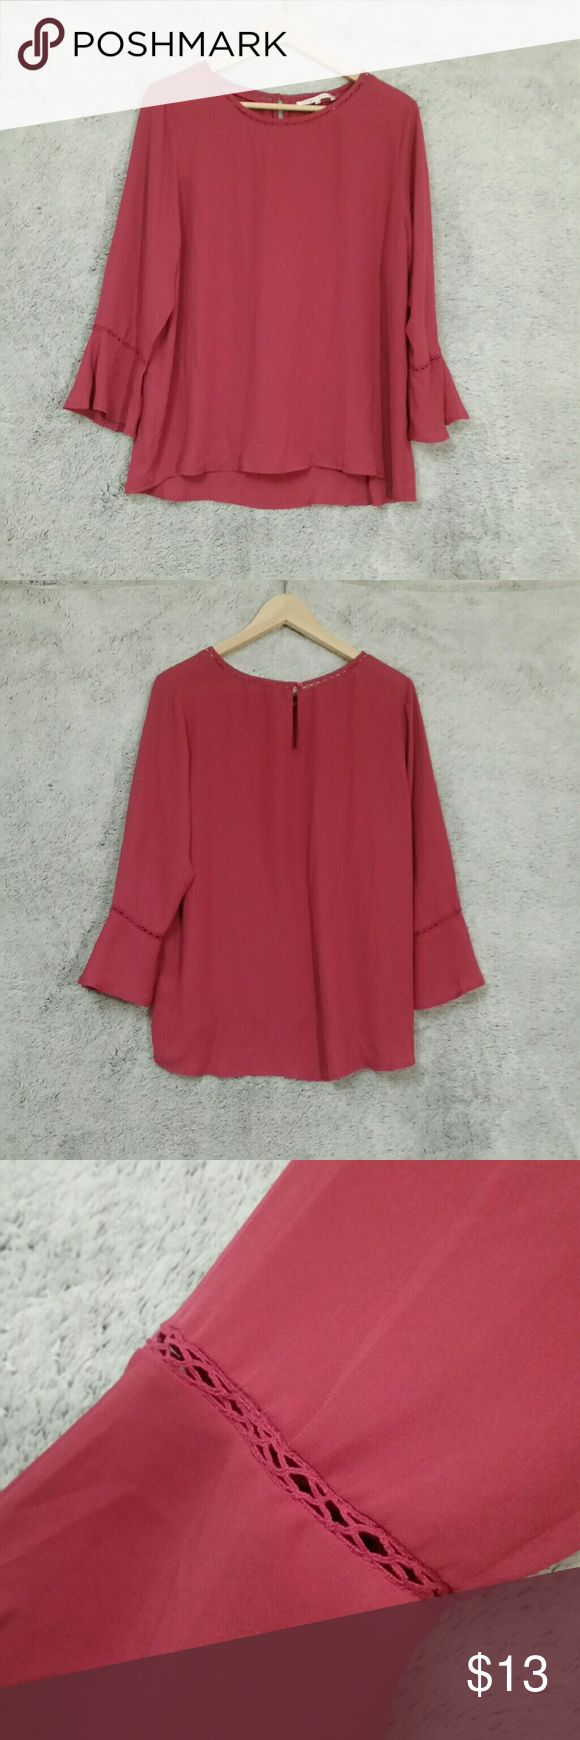 Hot Pink Blouse Loose hot pink blouse. New without tags, never worn. Violet & Claire Tops Blouses